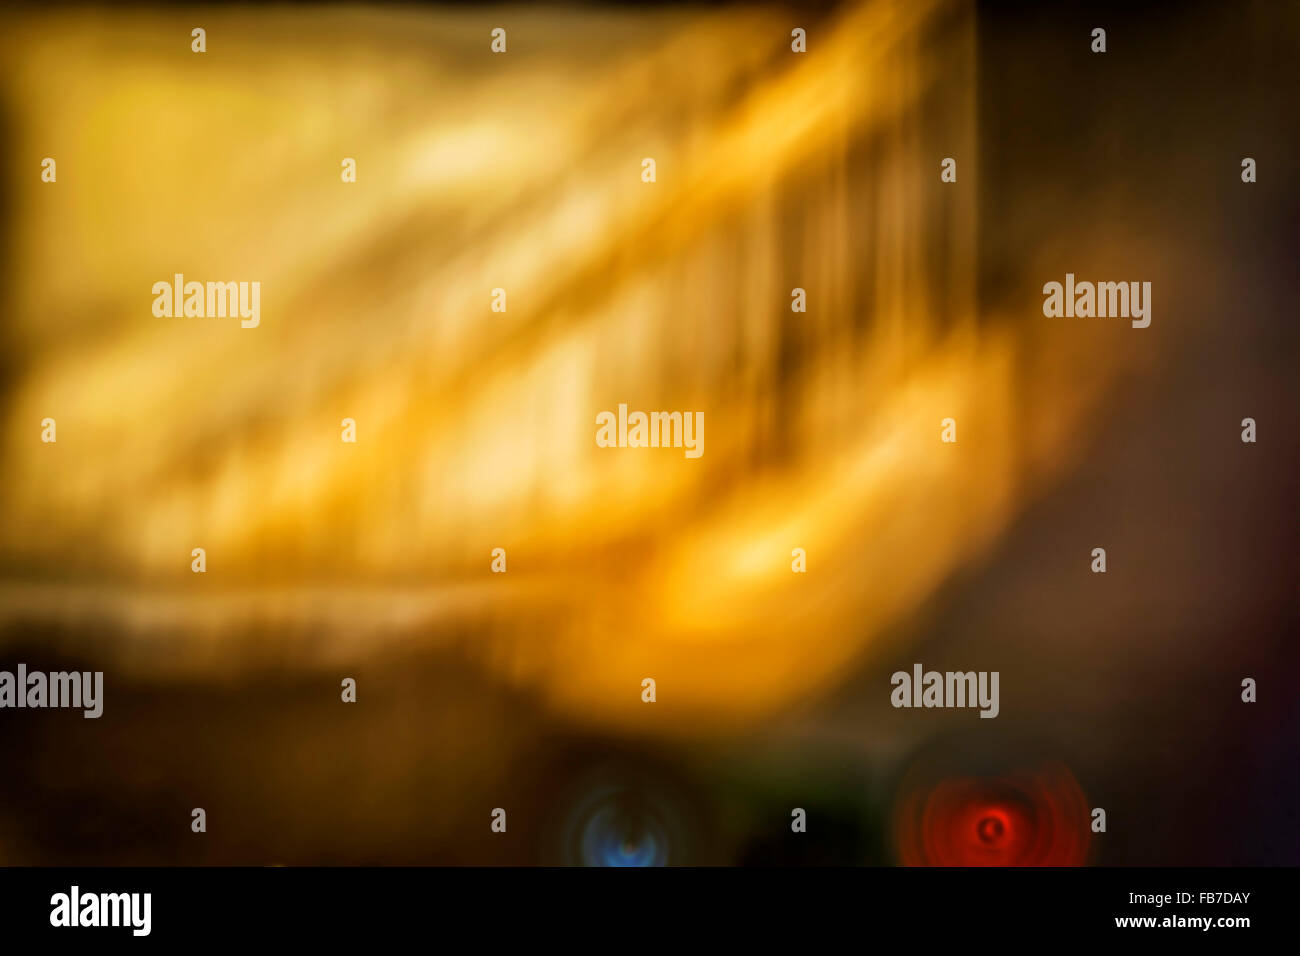 Abstract blue yellow blurred background - Stock Image